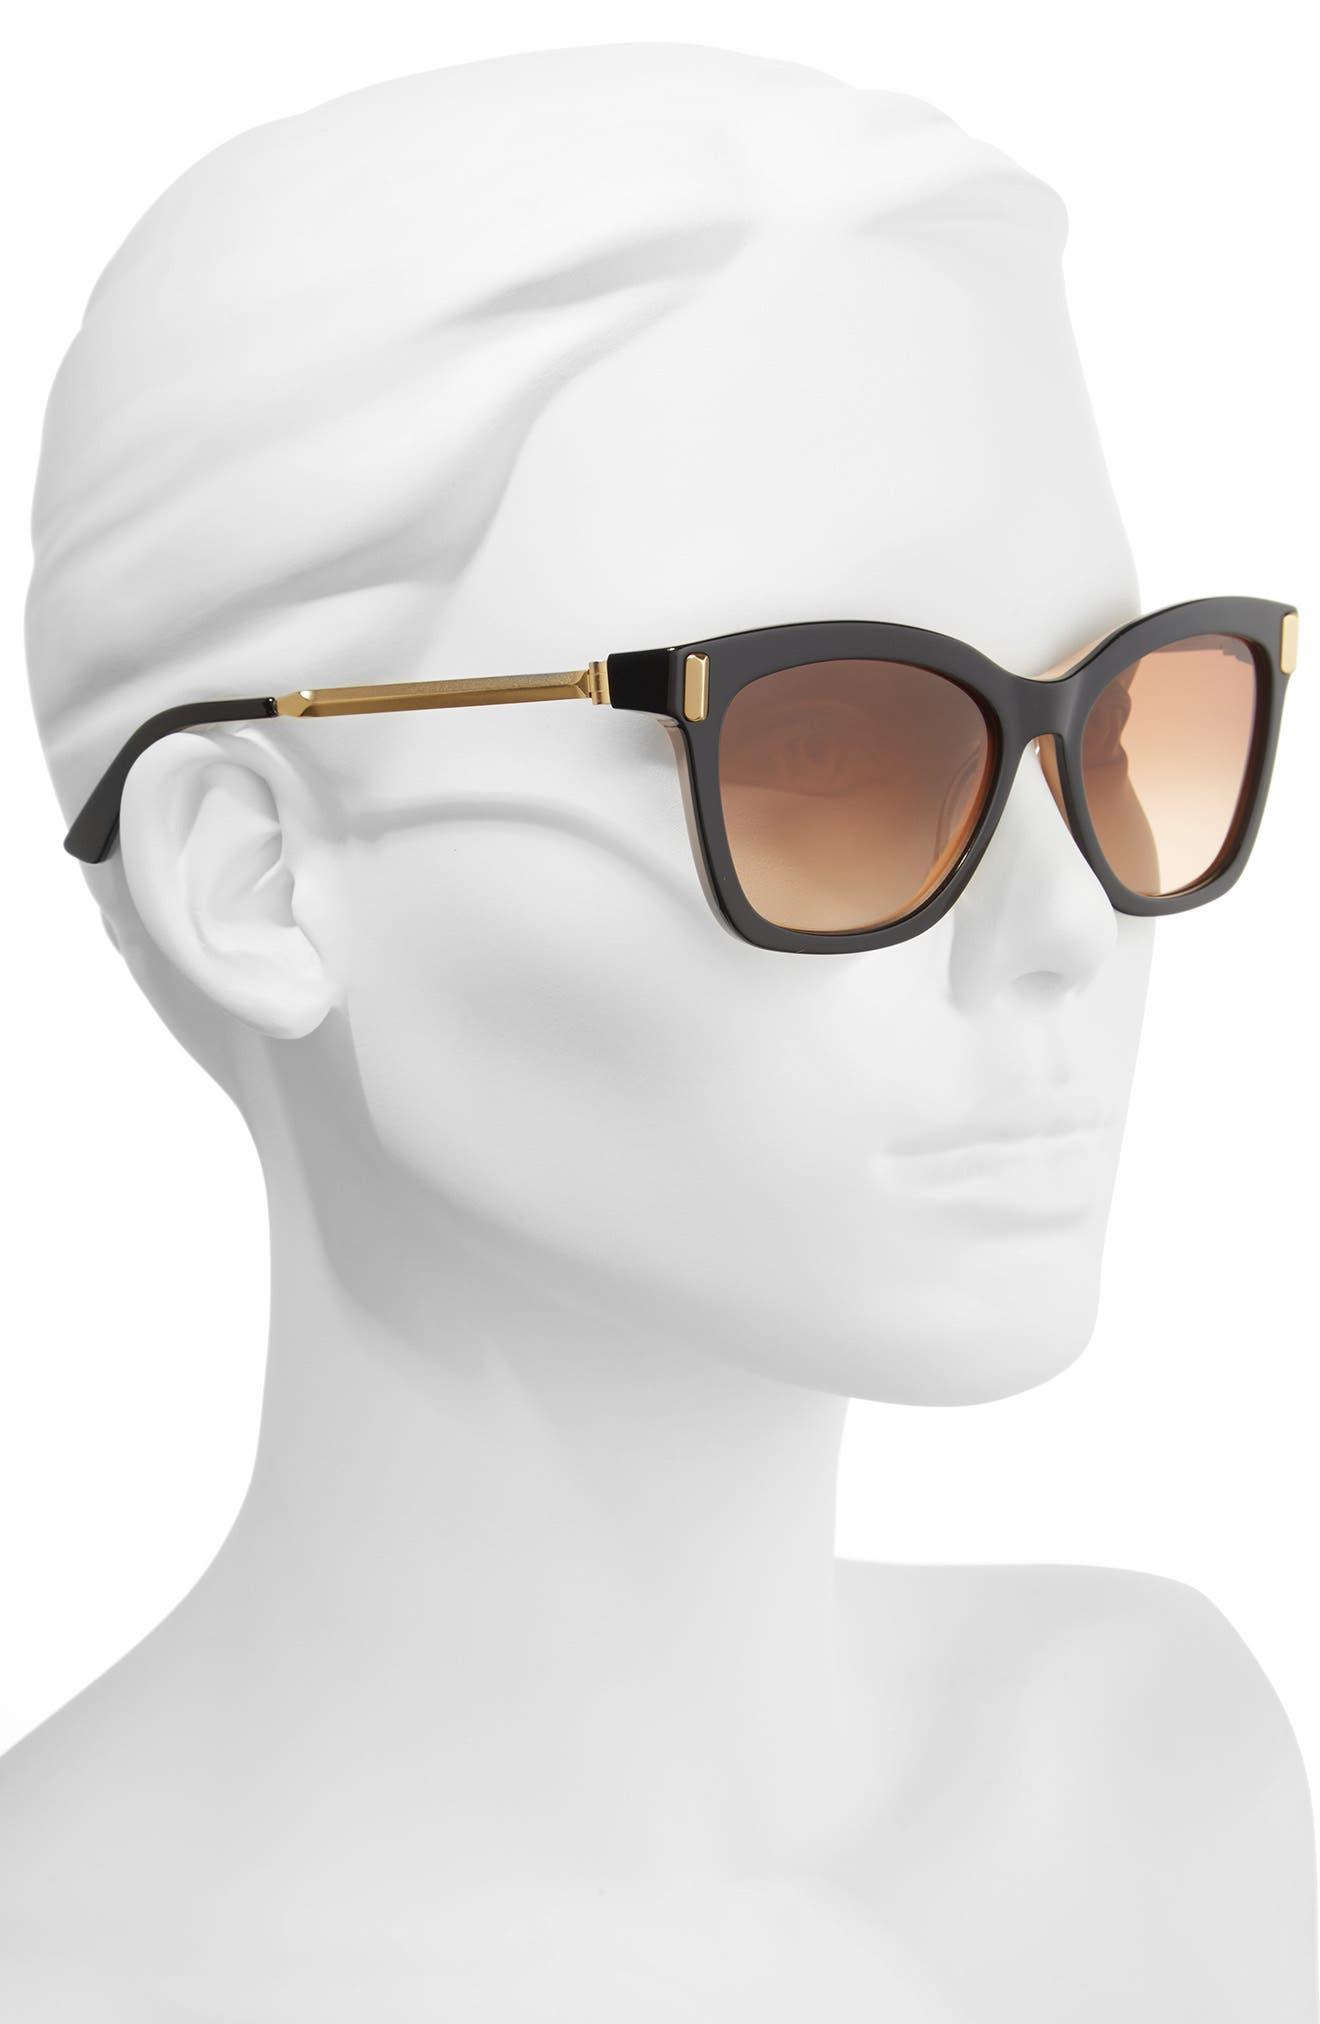 55mm Square Sunglasses,                             Alternate thumbnail 2, color,                             001